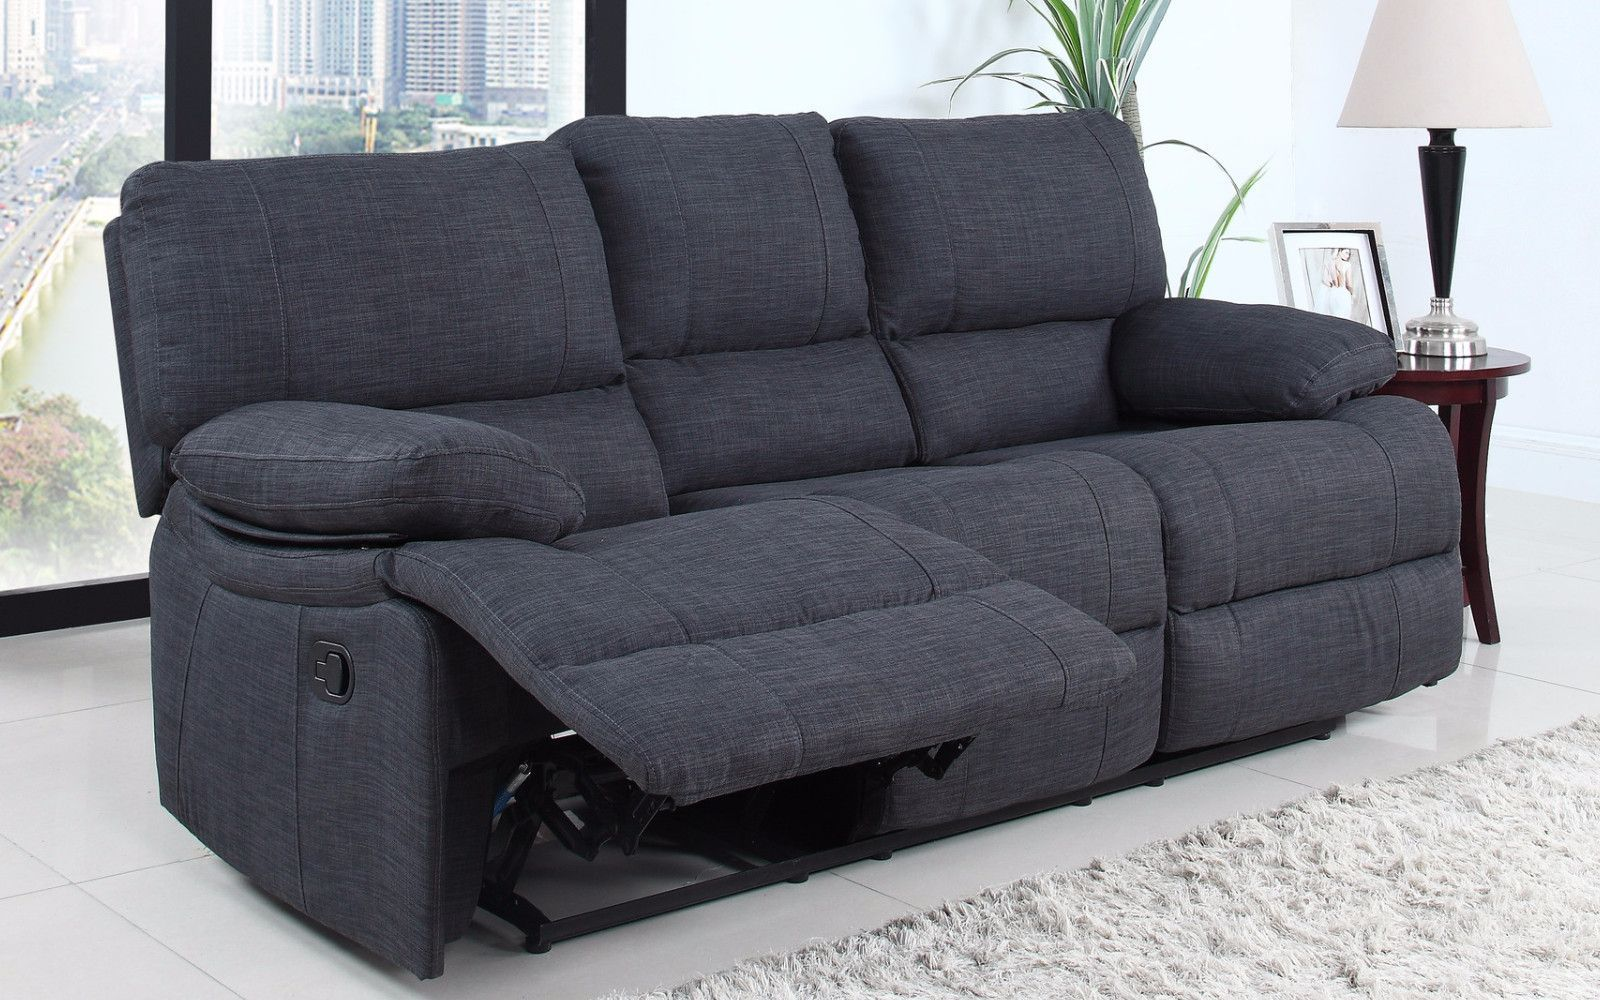 Classic Style Oversize And Overstuffed Reclining Sofa Featuring